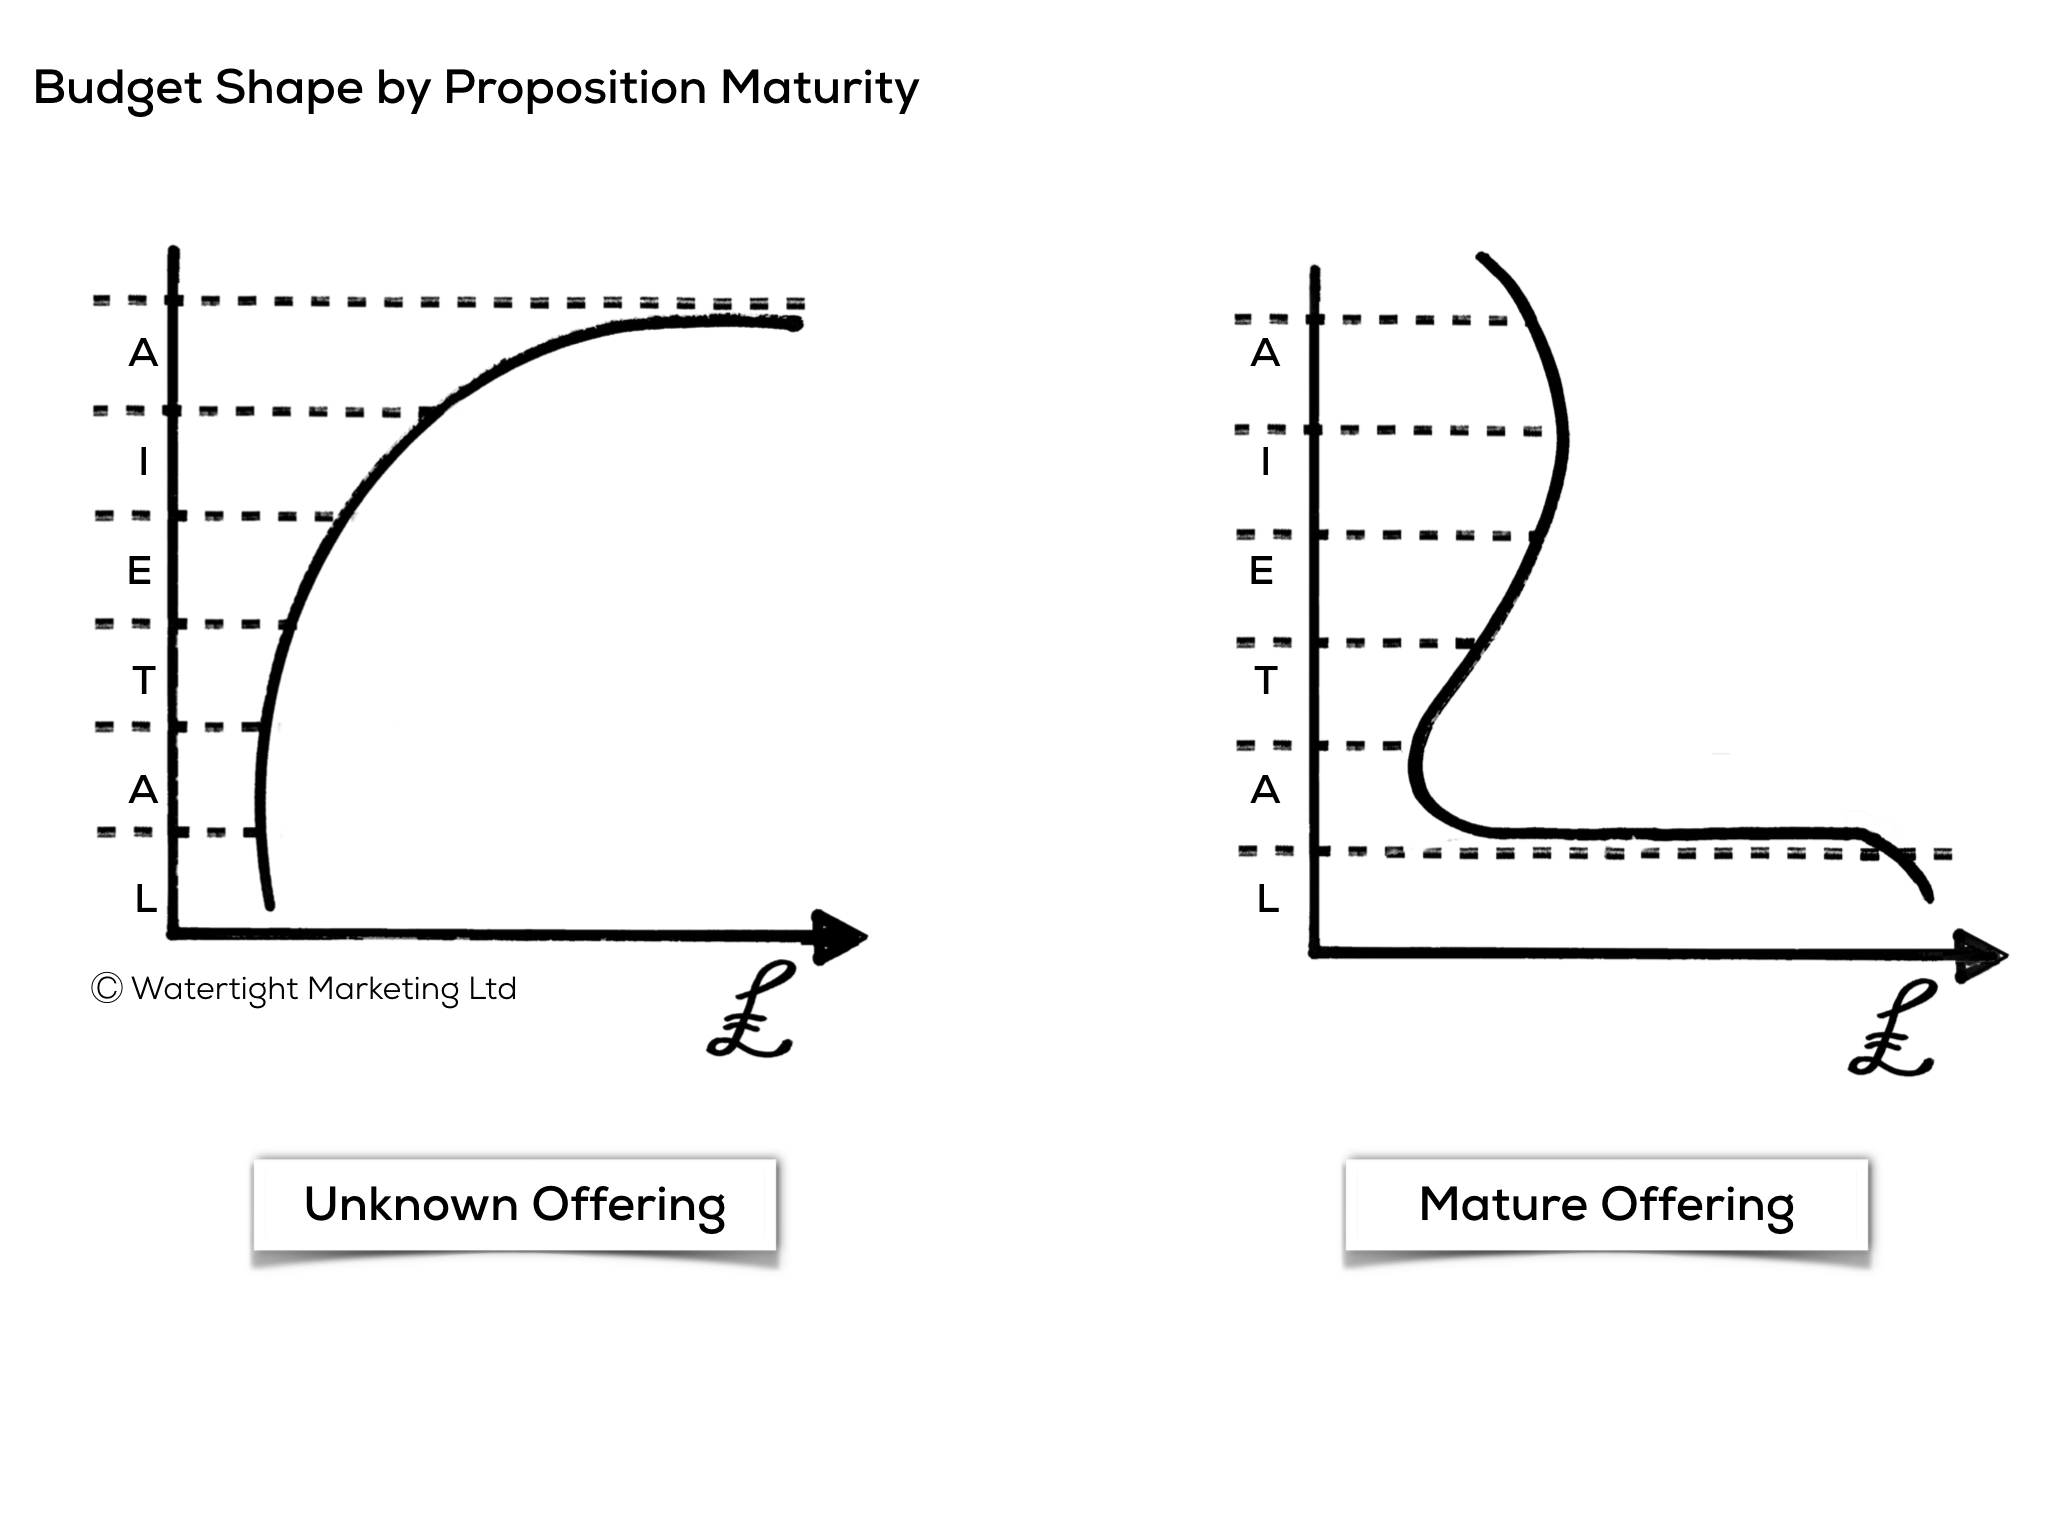 Budget shapes by product maturity